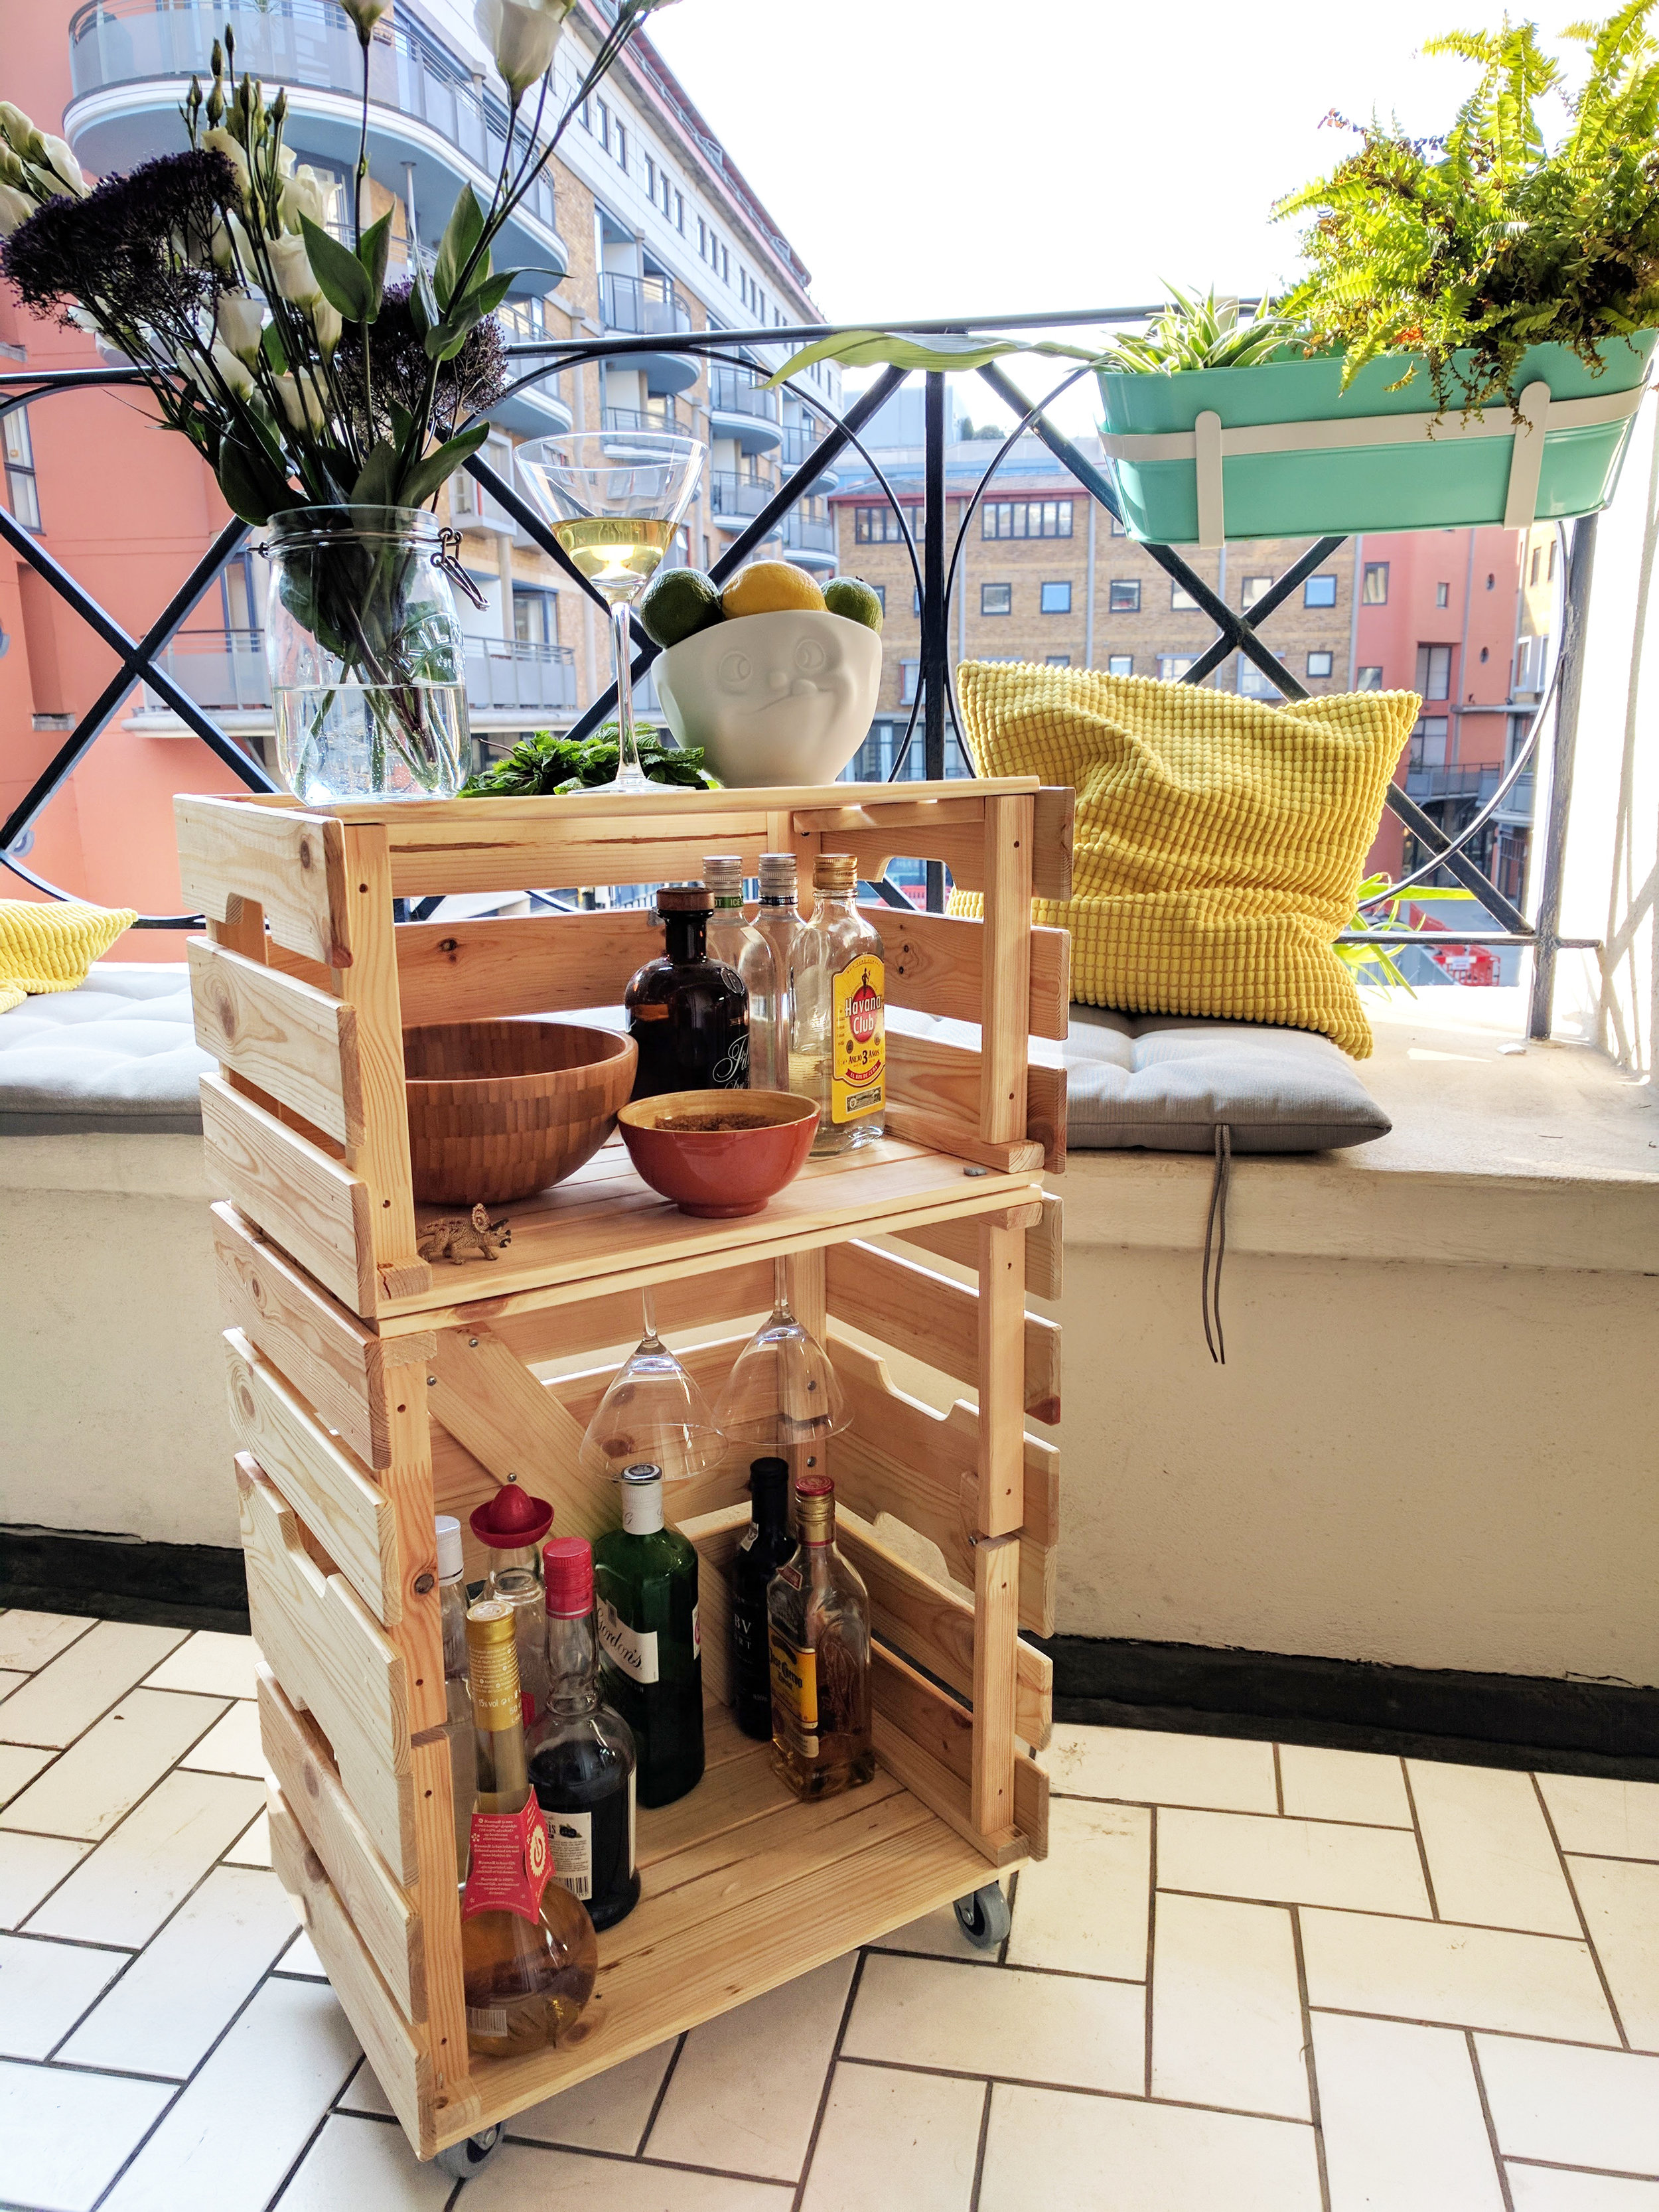 cocktailcart on wheels made out of old crates on sunny balcony